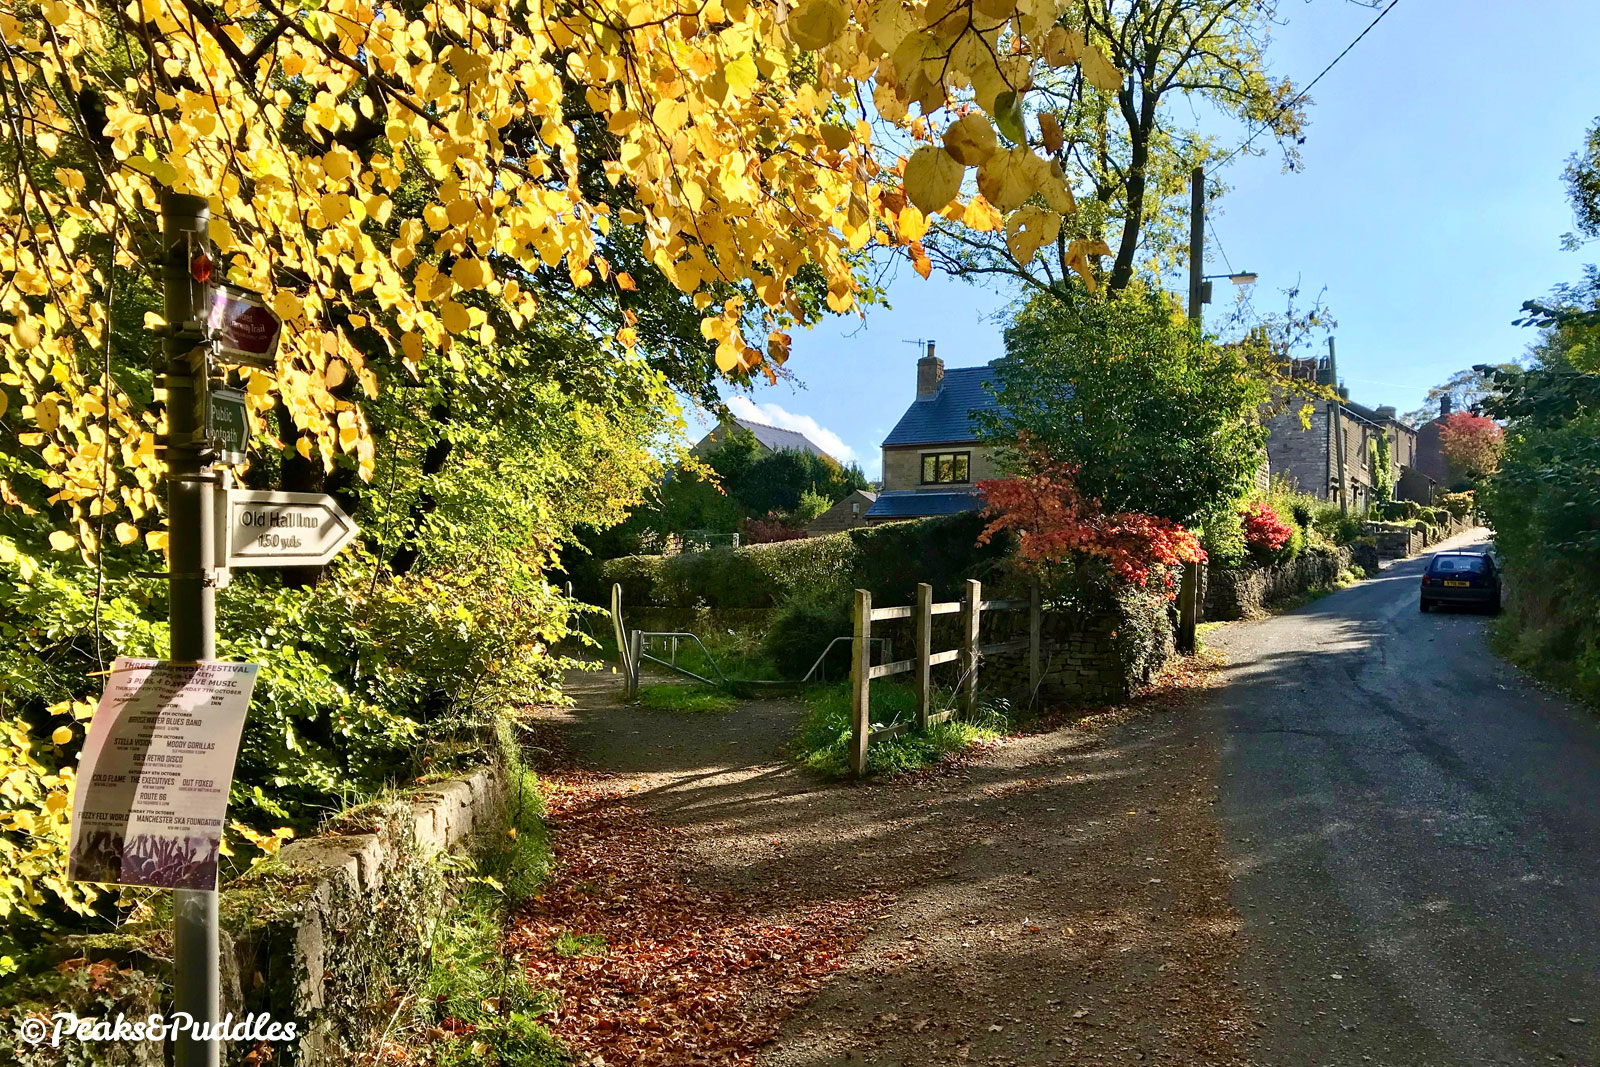 Crossing the first of two lanes up to the hamlet of Whitehough and its popular pubs, the trail is always scenic in autumn.